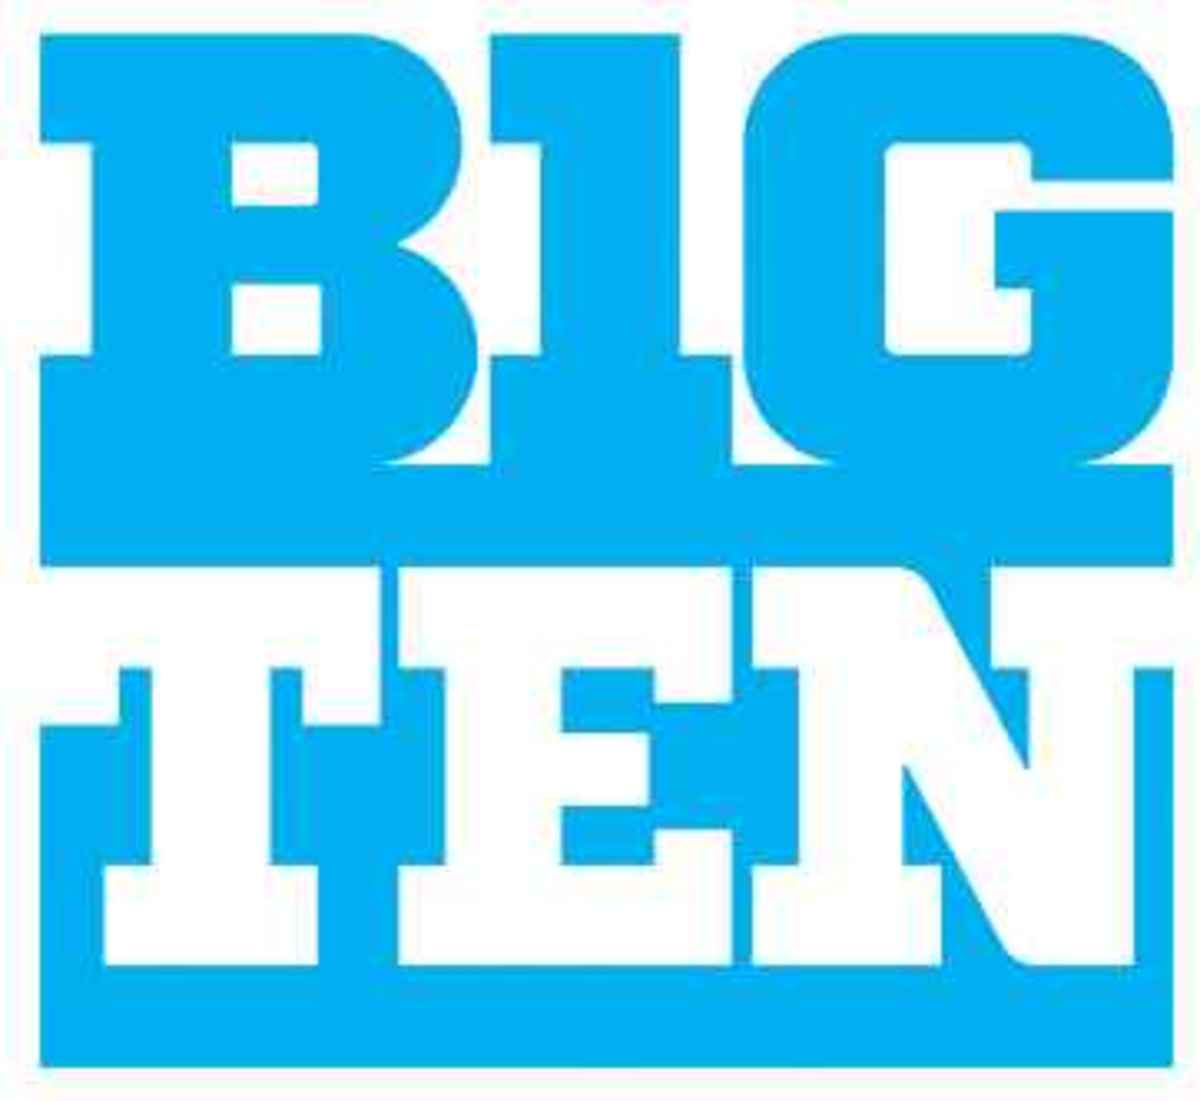 Big Ten was only conference to feature at least one player from every institution in Super Bowl XLV